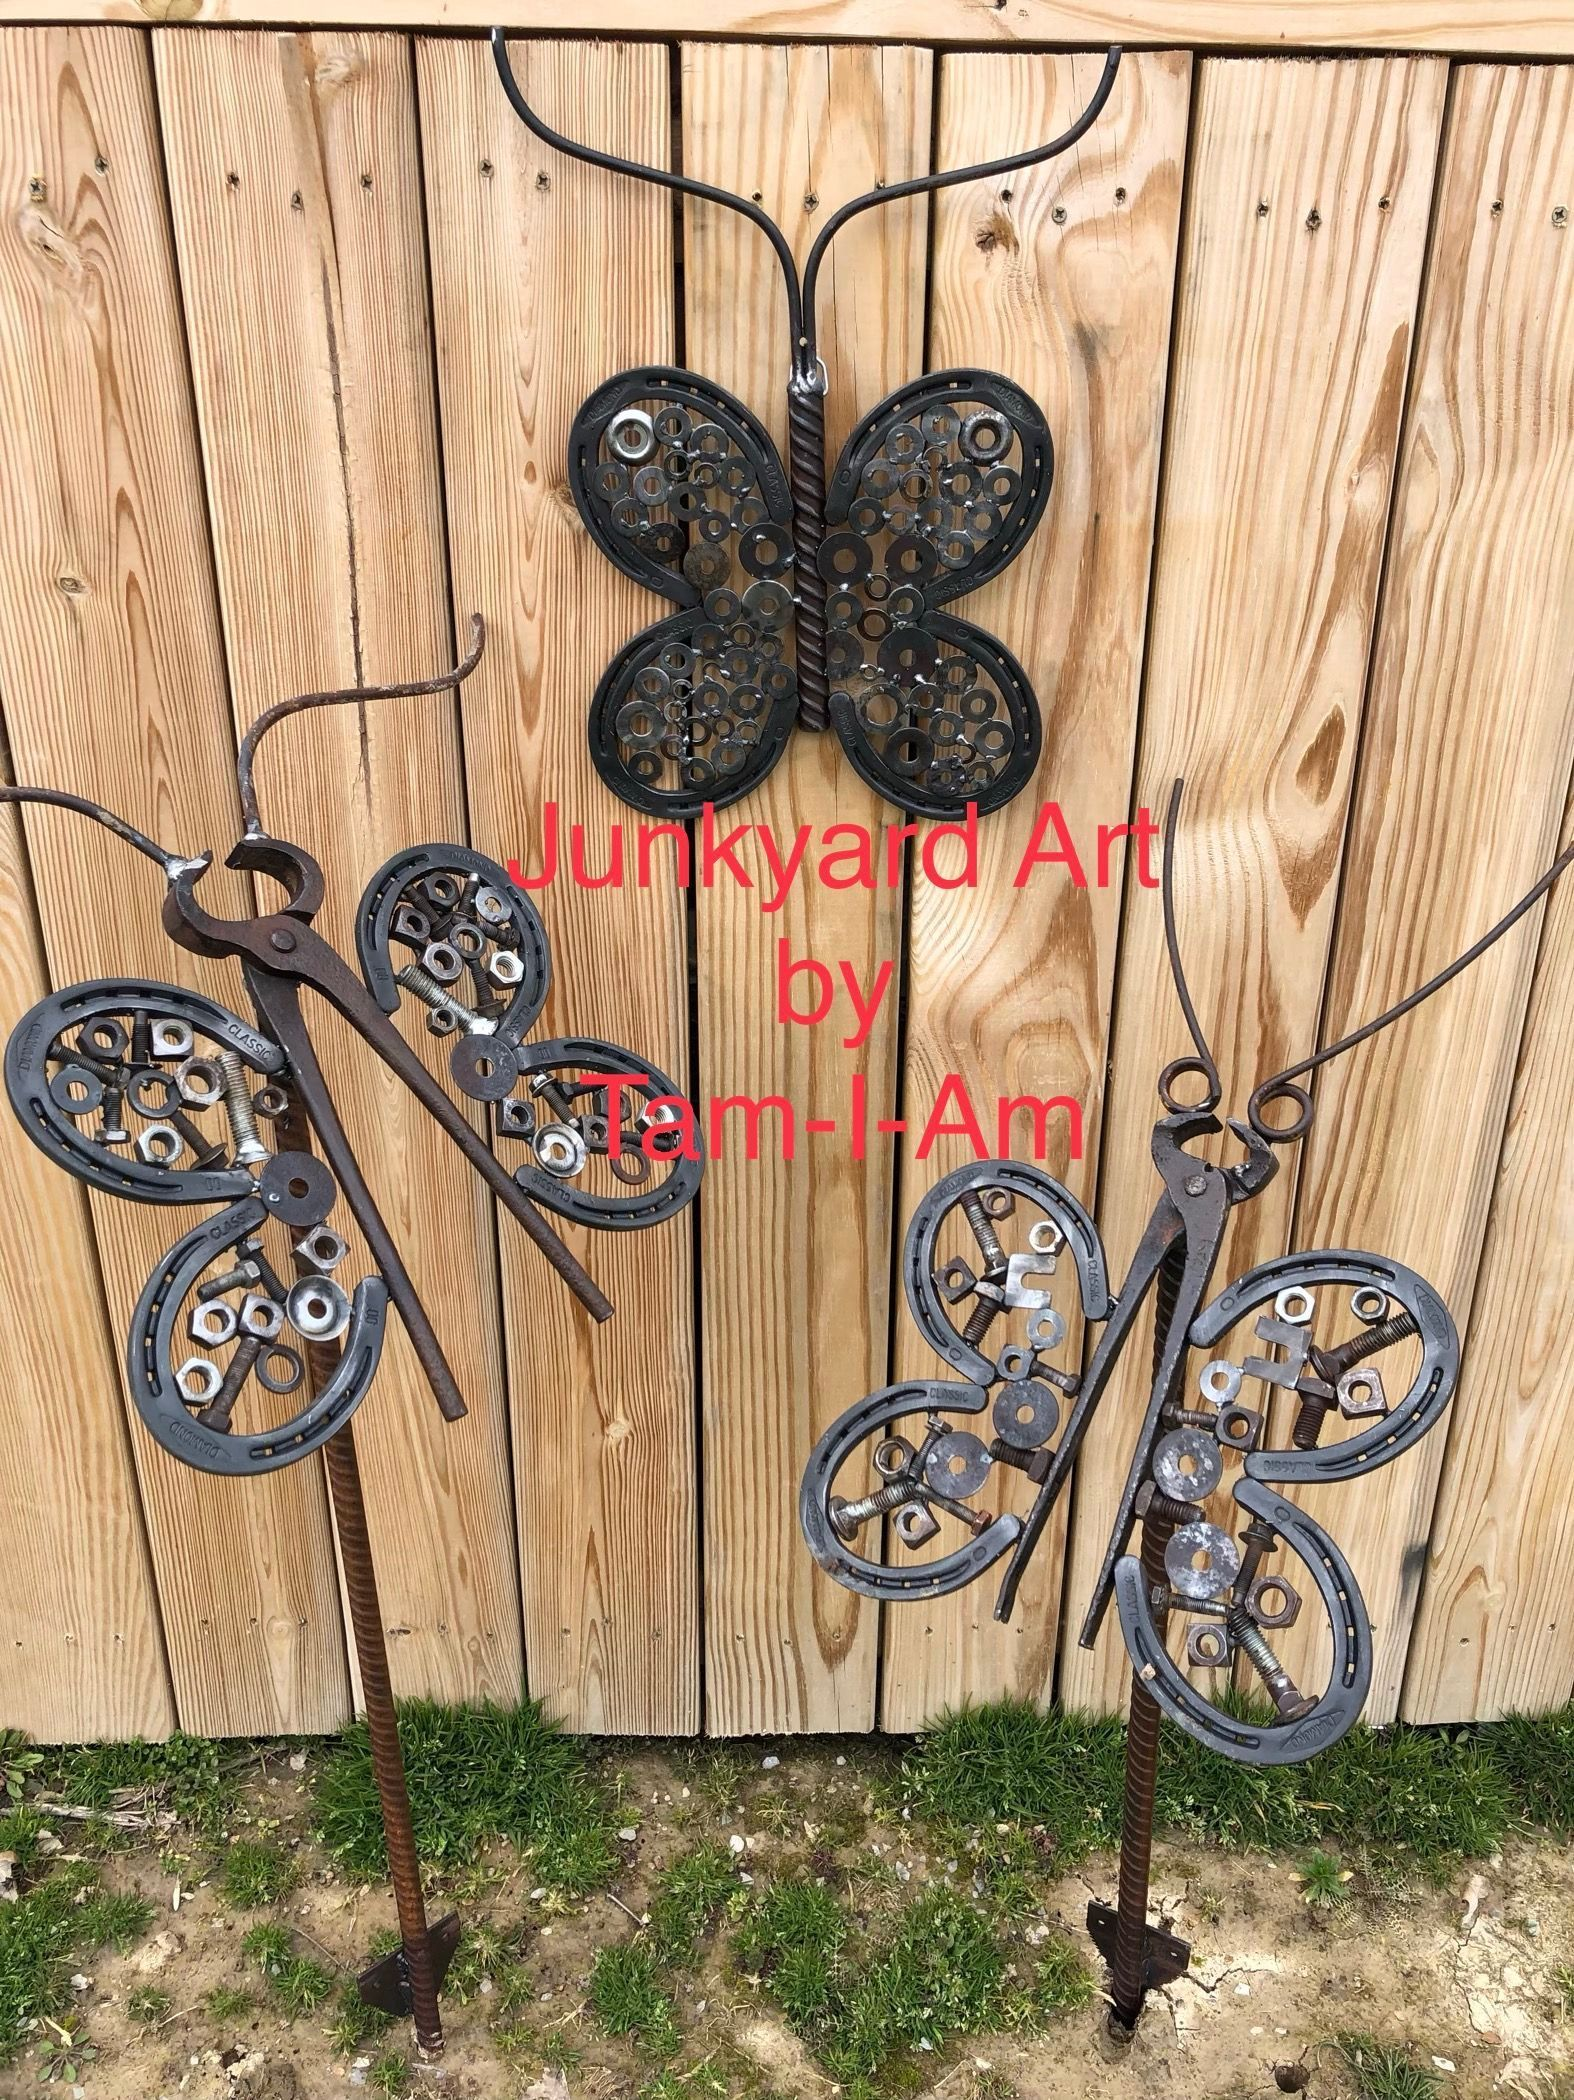 Junkyard art by tamiam these butterflies are one of my favorite